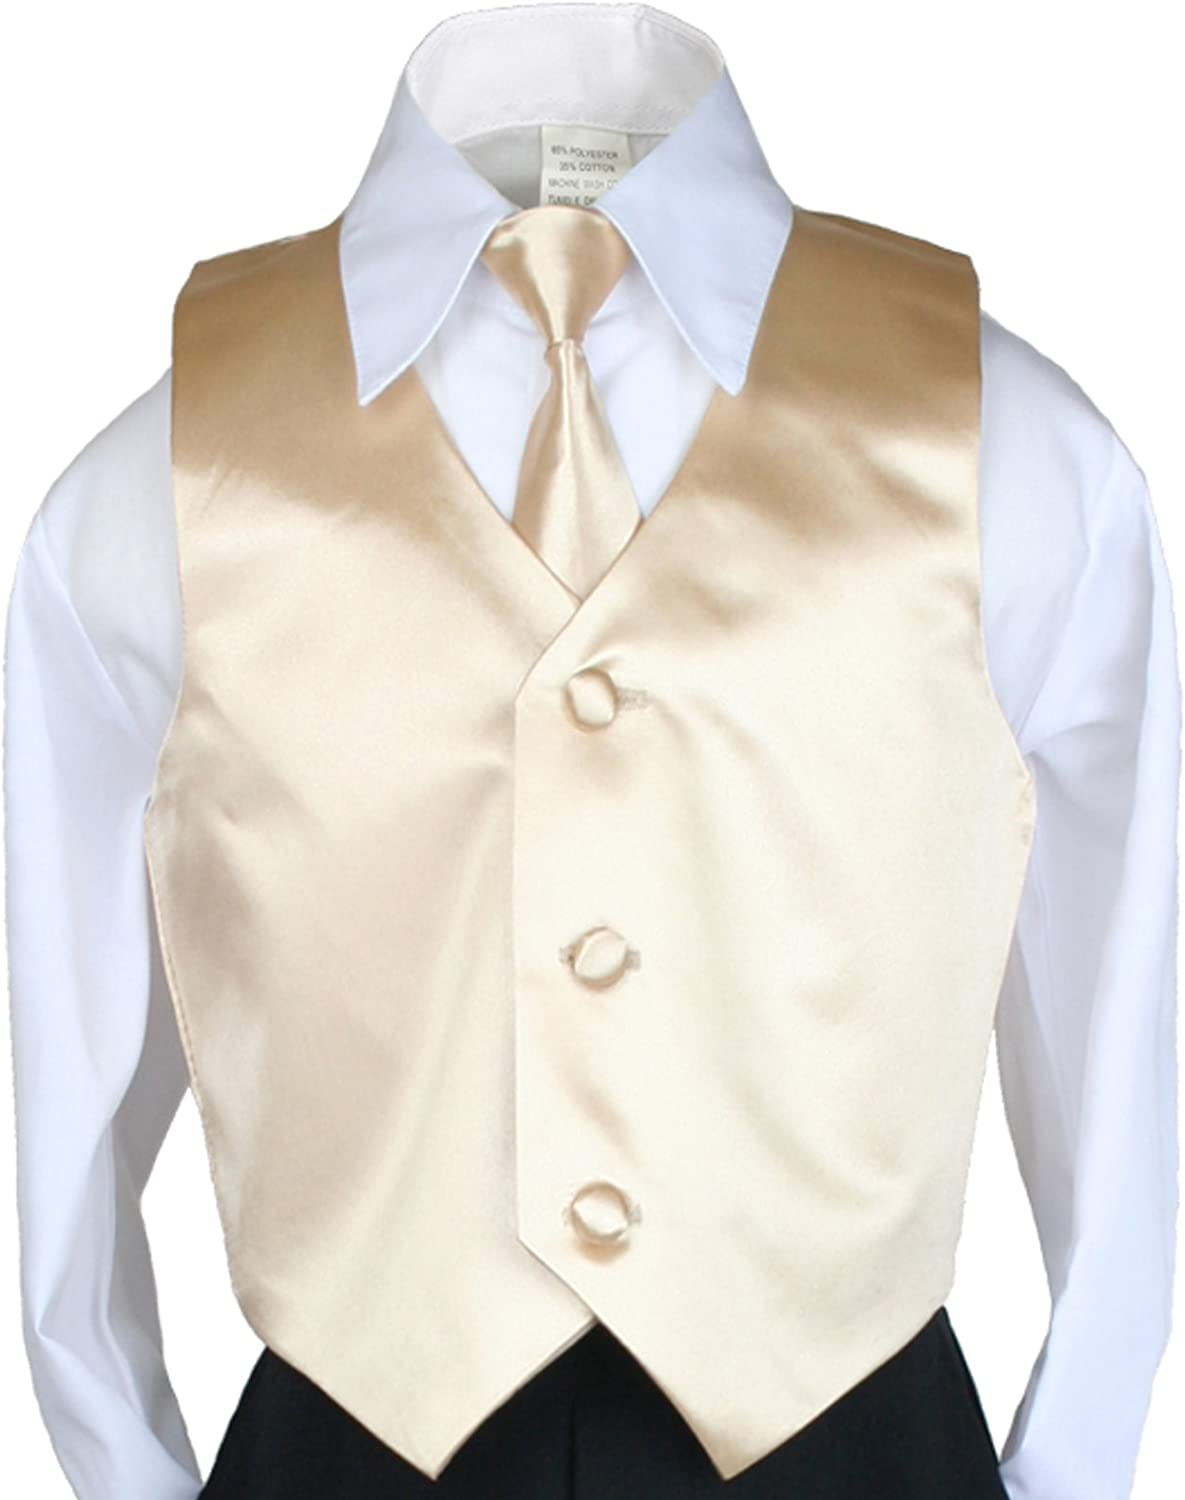 Unotux 2pc Boys Satin Champagne Vest and Necktie Sets from Baby to Teen